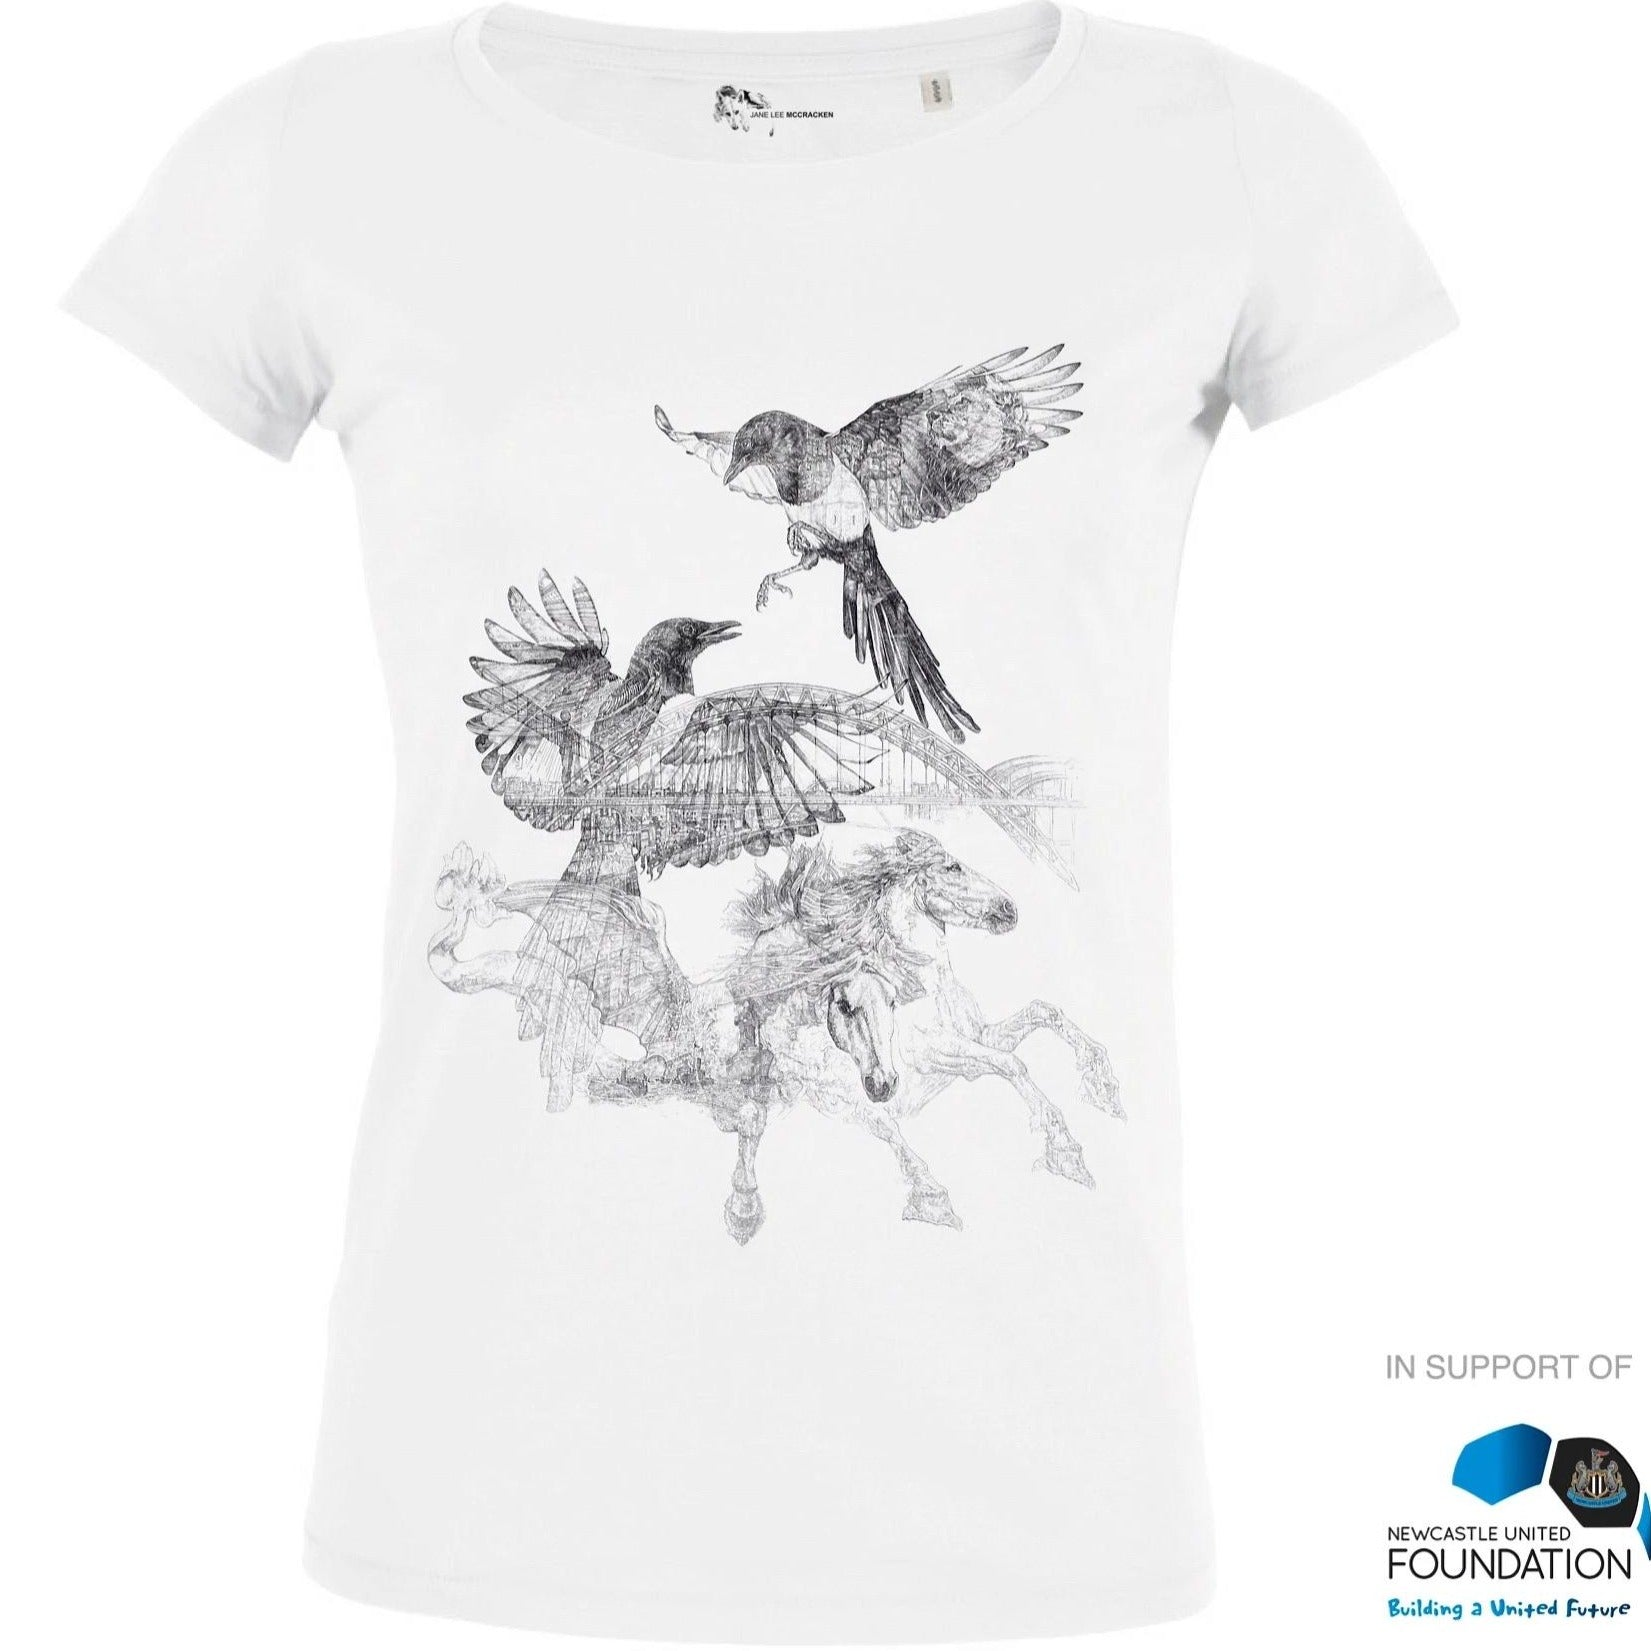 NEWCASTLE Women's T-shirt